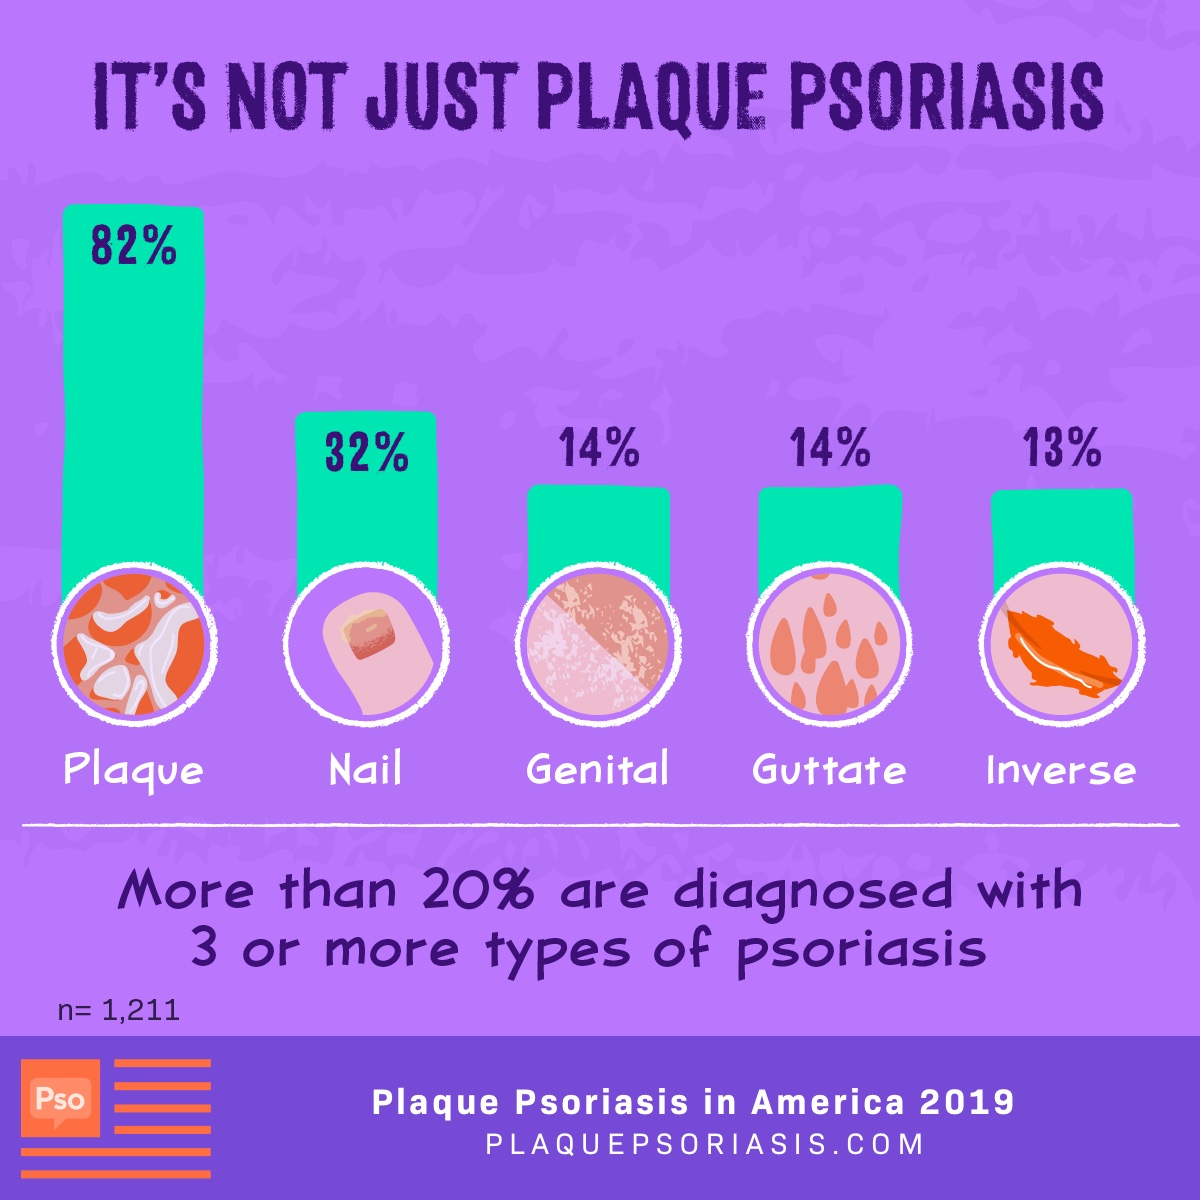 More than 20% are diagnosed with 3 or more types of psoriasis. The most common types being plaque (82%), nail (32%), genital (14%), guttate (14%) and inverse (13%).